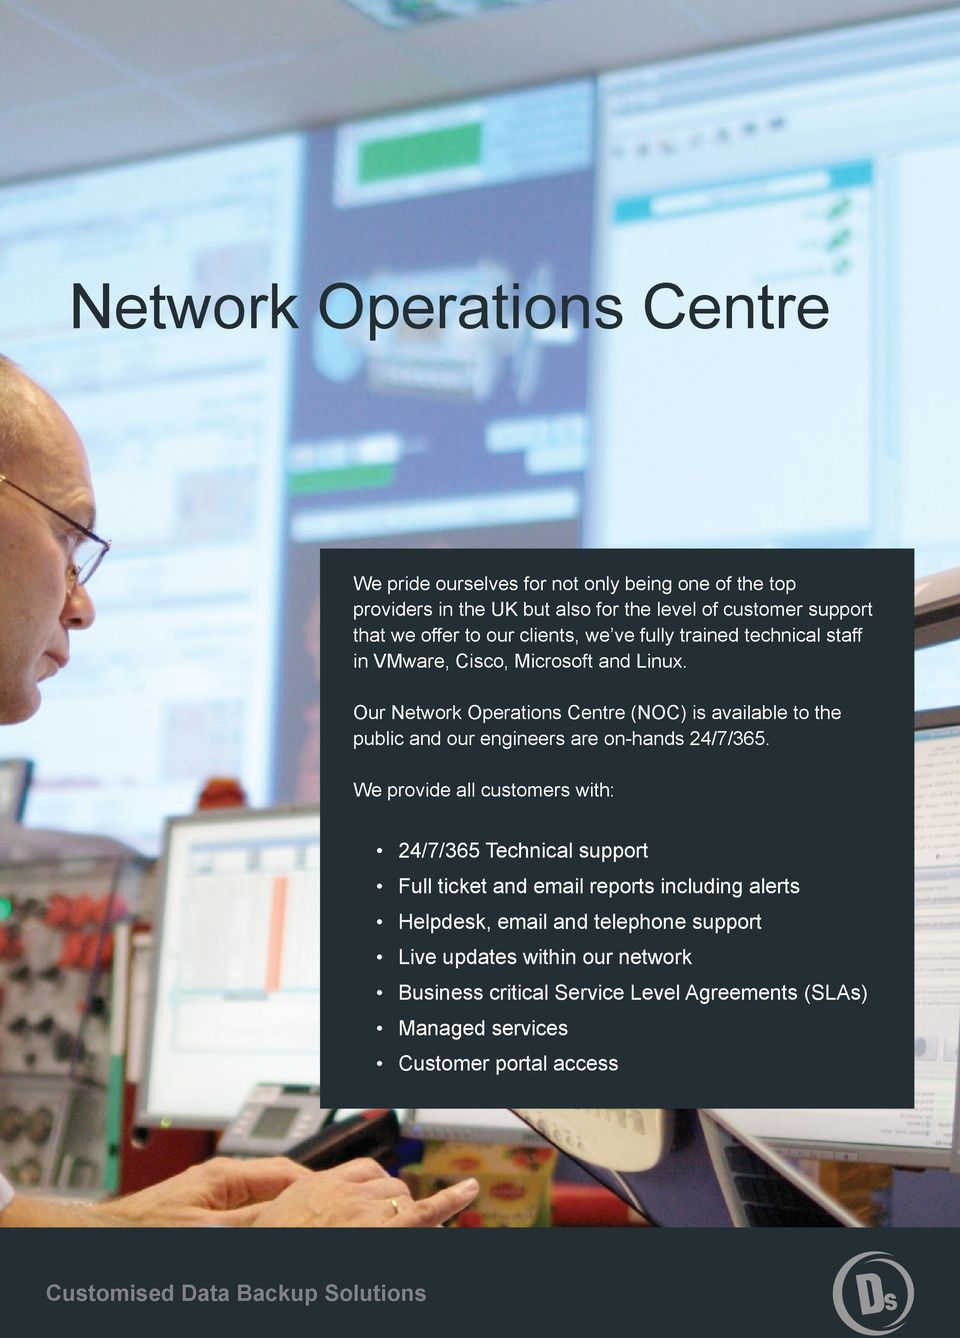 Our Network Operations Centre (NOC) is available to the public and our engineers are on-hands 24/7/365.